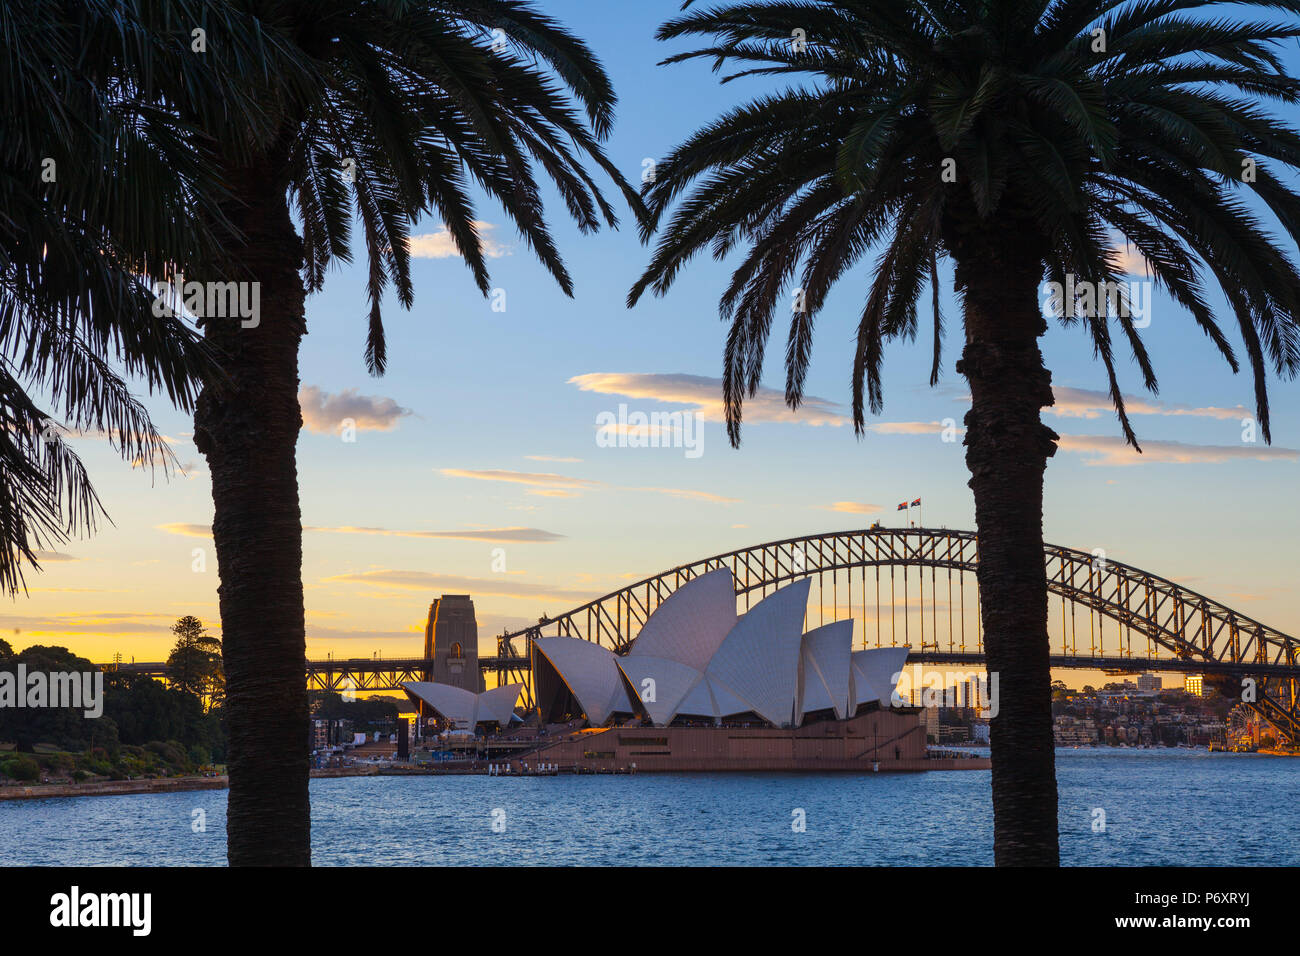 Sydney Opera House & Harbour Bridge, Darling Harbour, Sydney, New South Wales, Australia - Stock Image